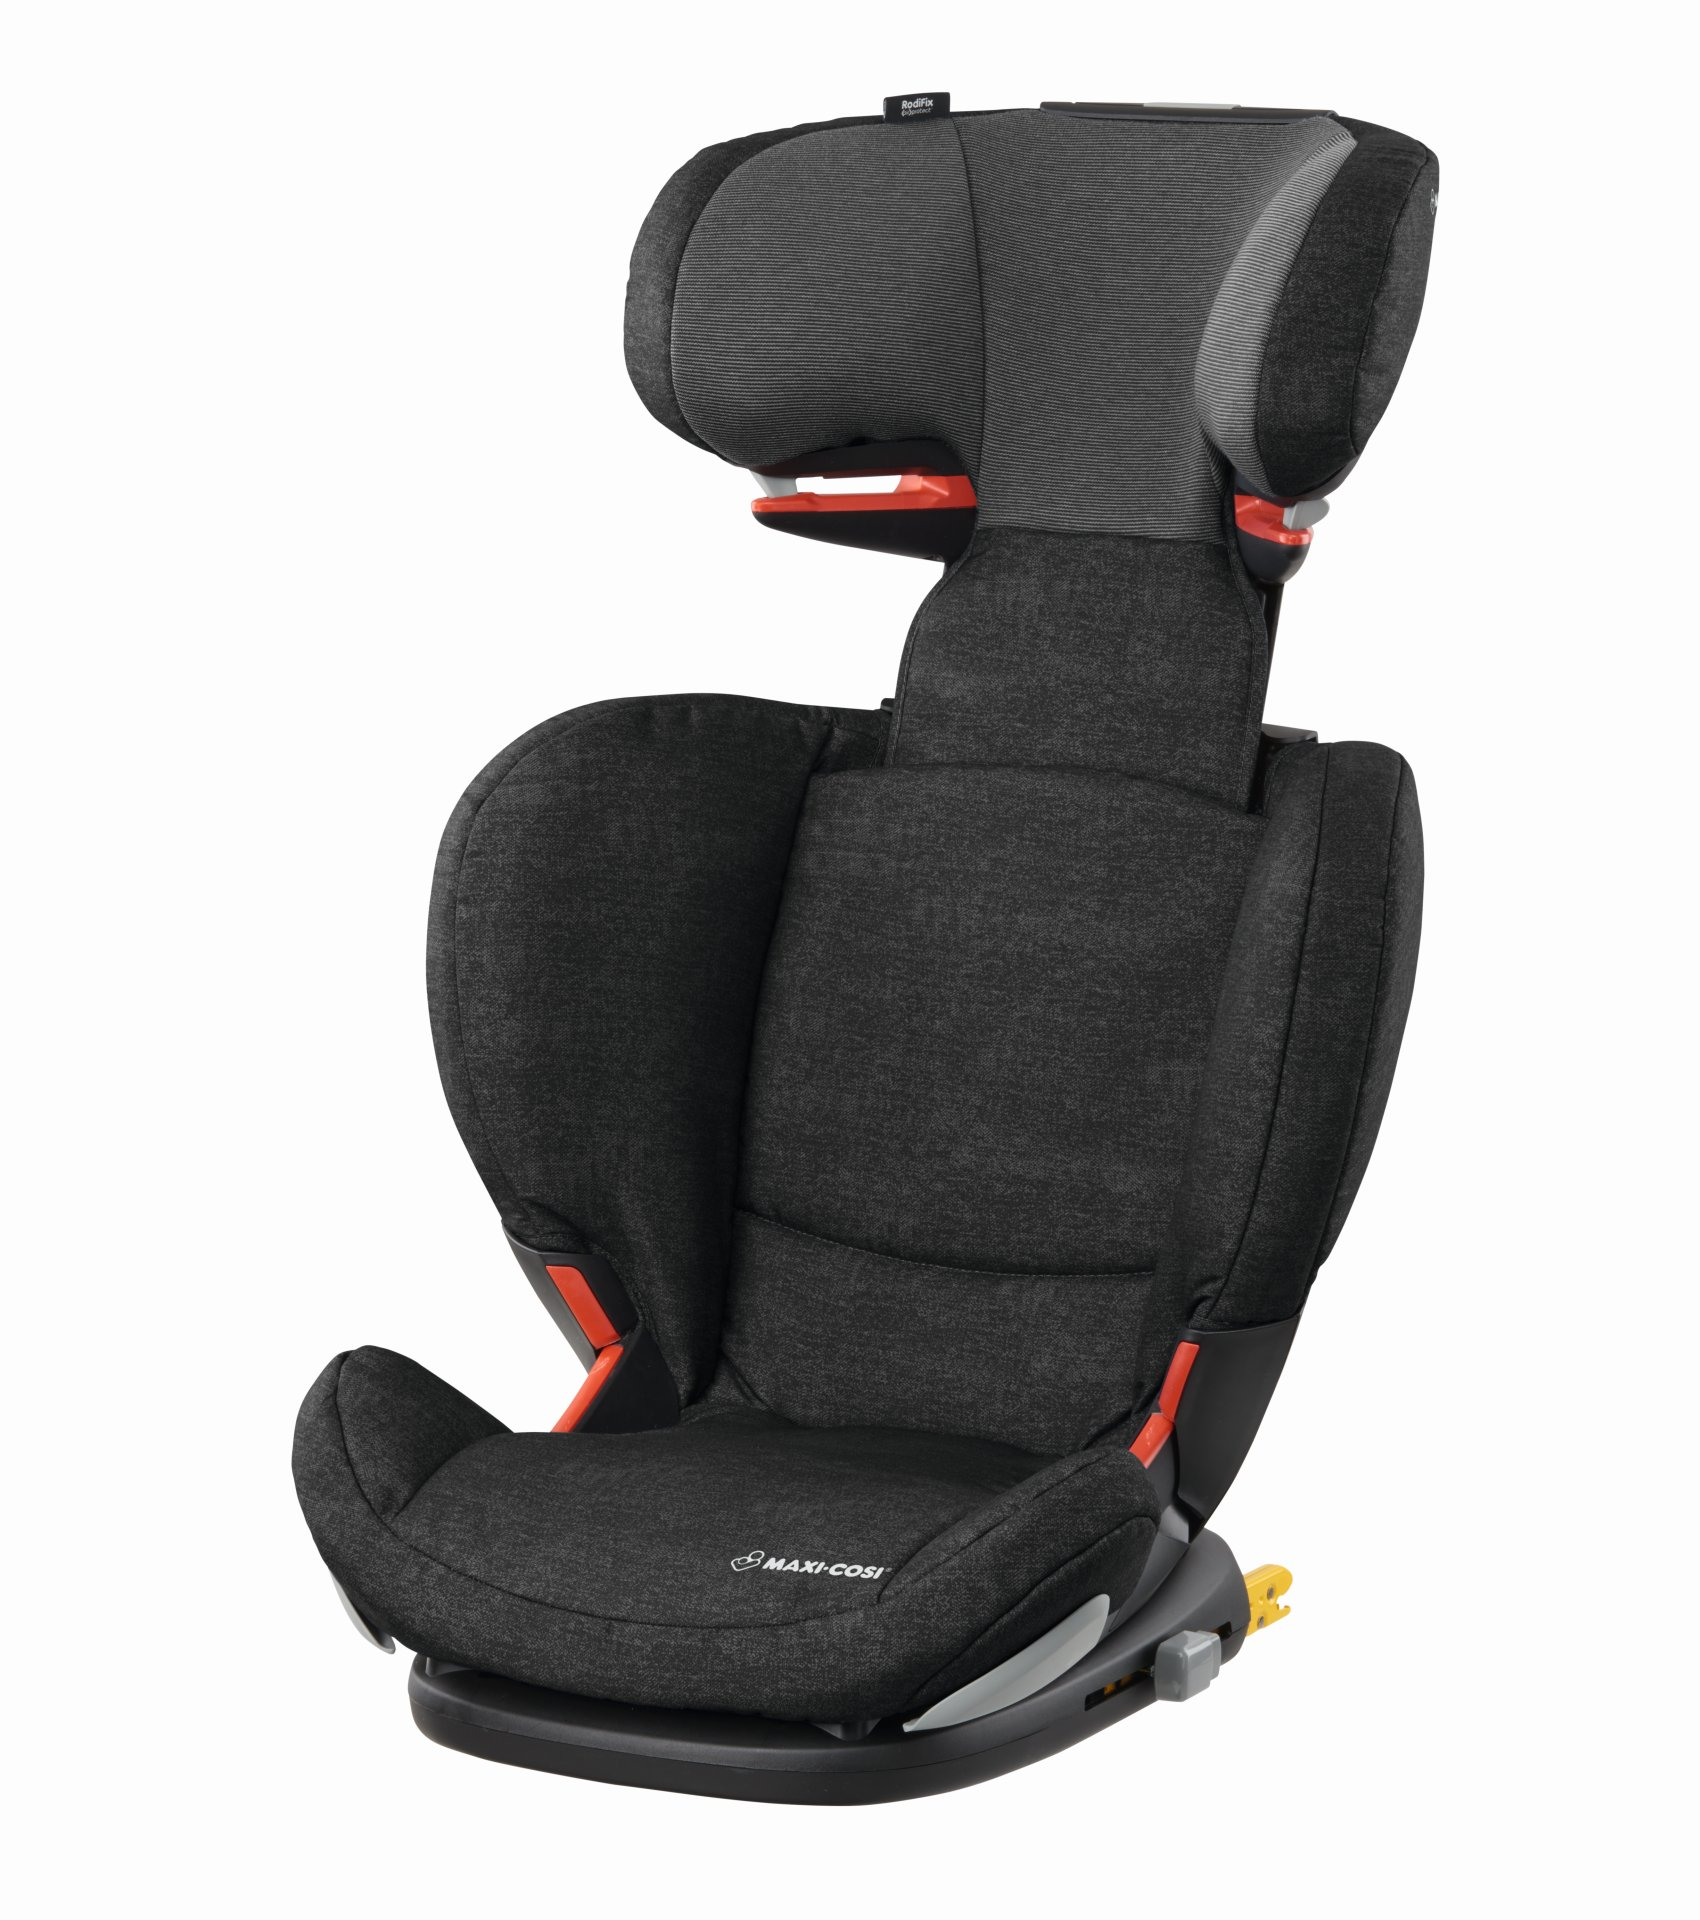 maxi cosi safety seat rodifix airprotect 2018 nomad black buy at kidsroom car seats. Black Bedroom Furniture Sets. Home Design Ideas